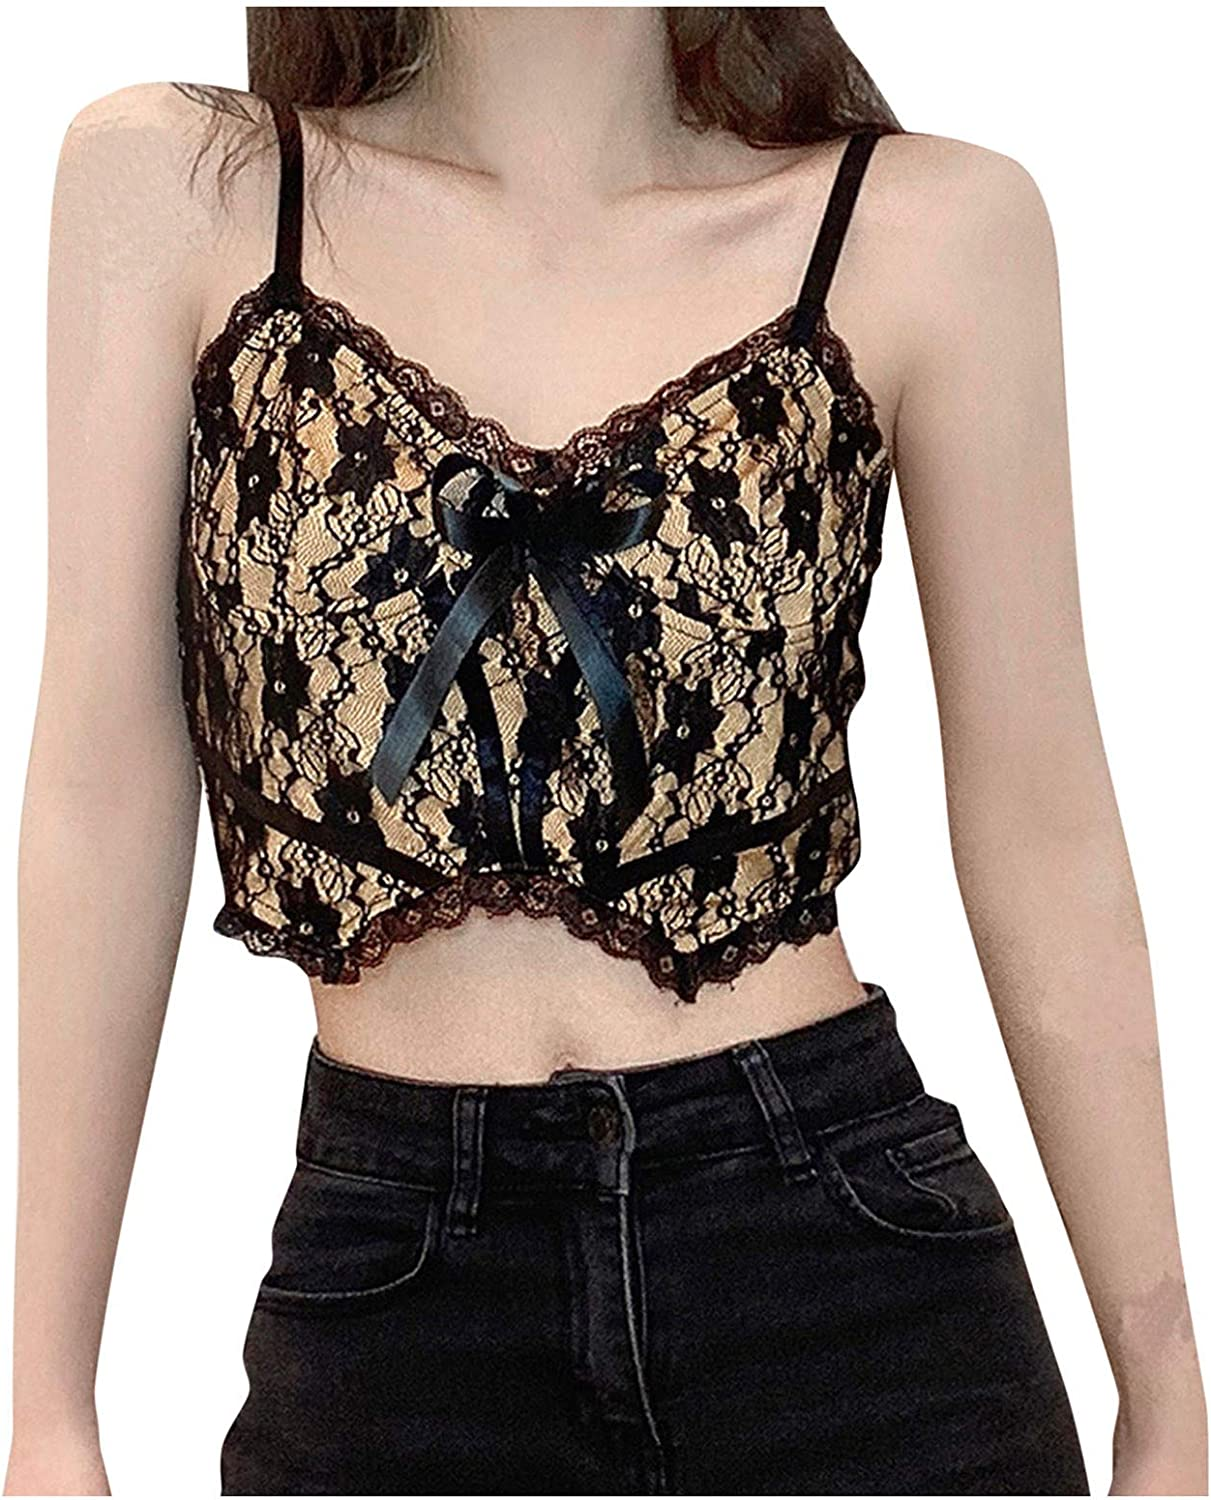 Women Fashion Sexy Wrapped Chest Lace Stitching Tank Tops Cute Bow Slim Fit Short Camisole Crop Top Shirts